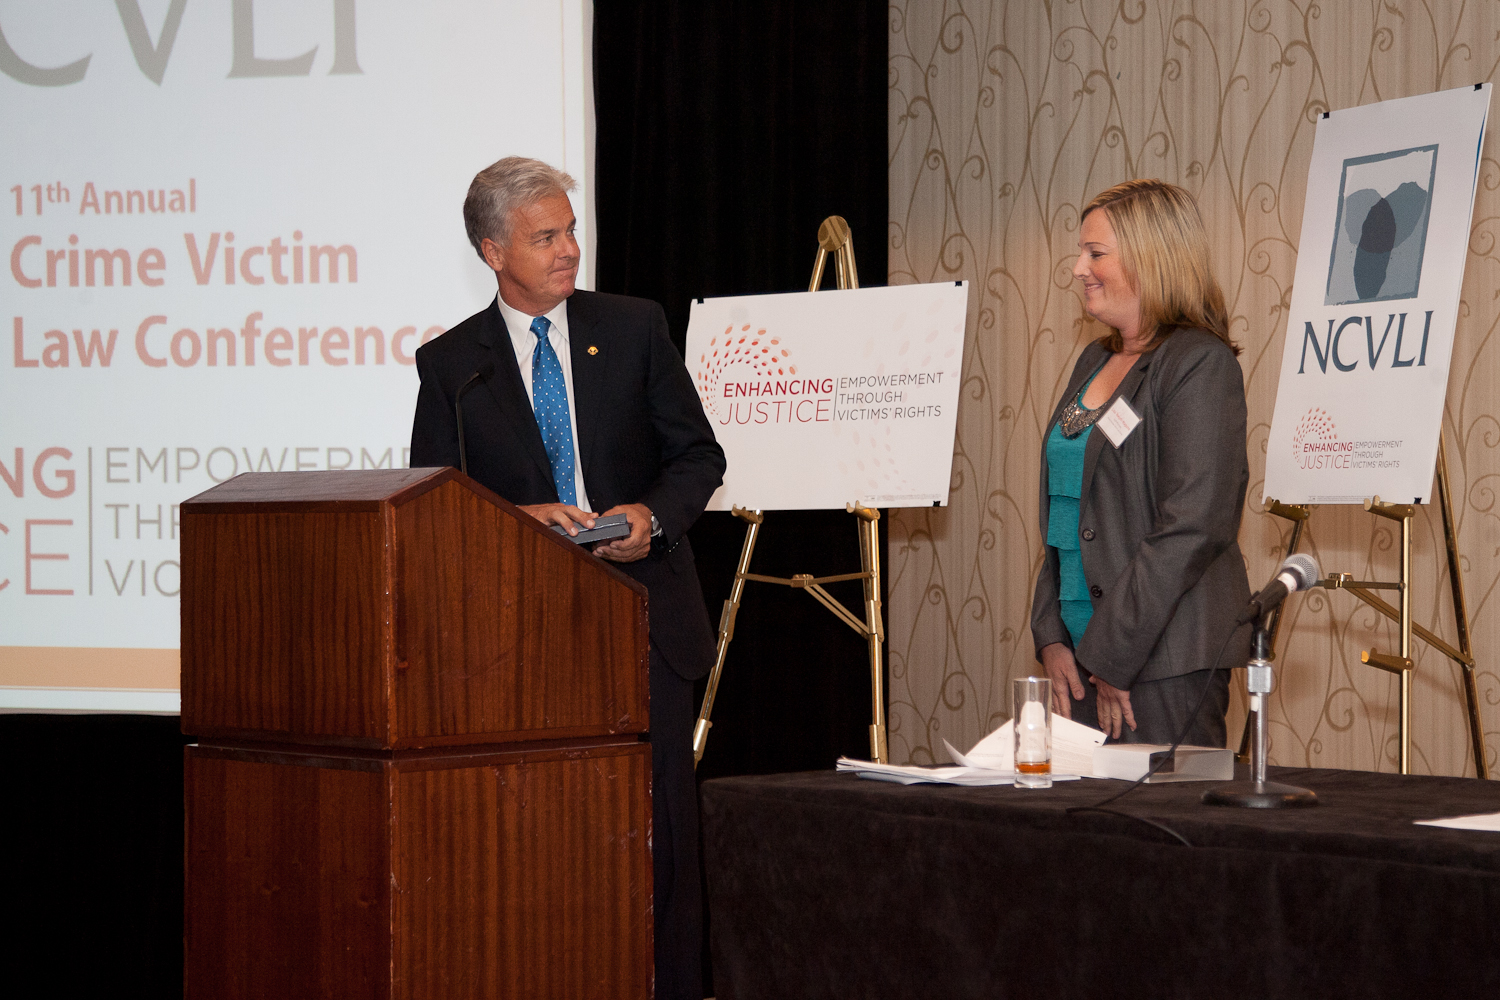 Mitch Morrissey of the Denver District Attorney's Office and Lisa Teesch-Maguire of the Rocky Mountain Victim Law Center accept the 2012 Victims' Rights Partnership Award on behalf of their respective organizations.